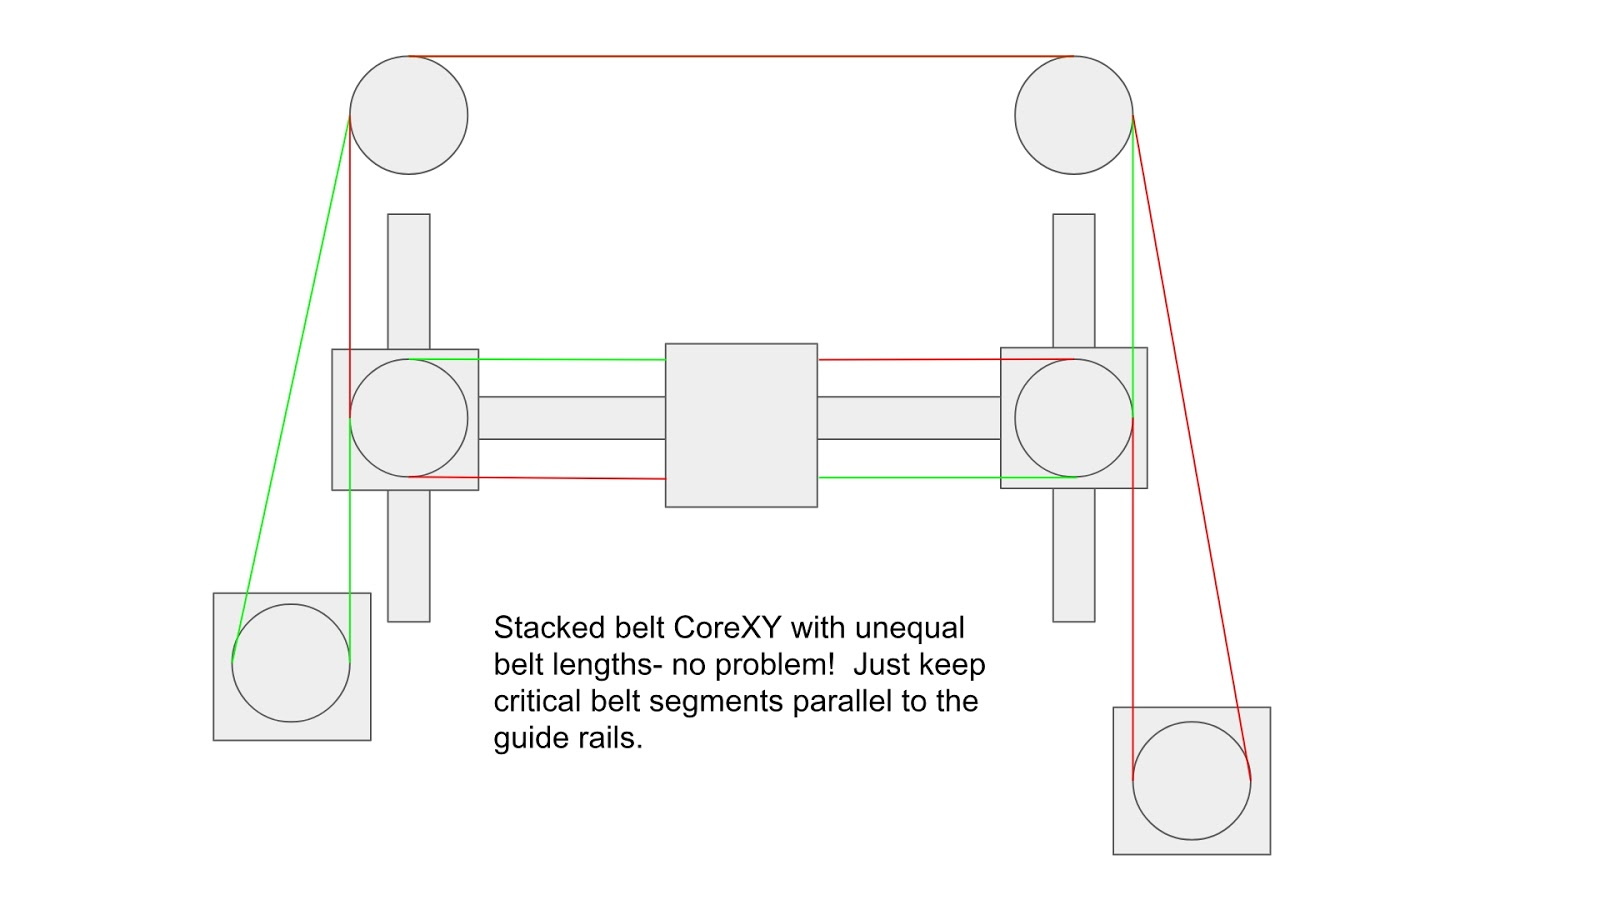 Mark Rehorst's Tech Topics: CoreXY Mechanism Layout and Belt Tensioning